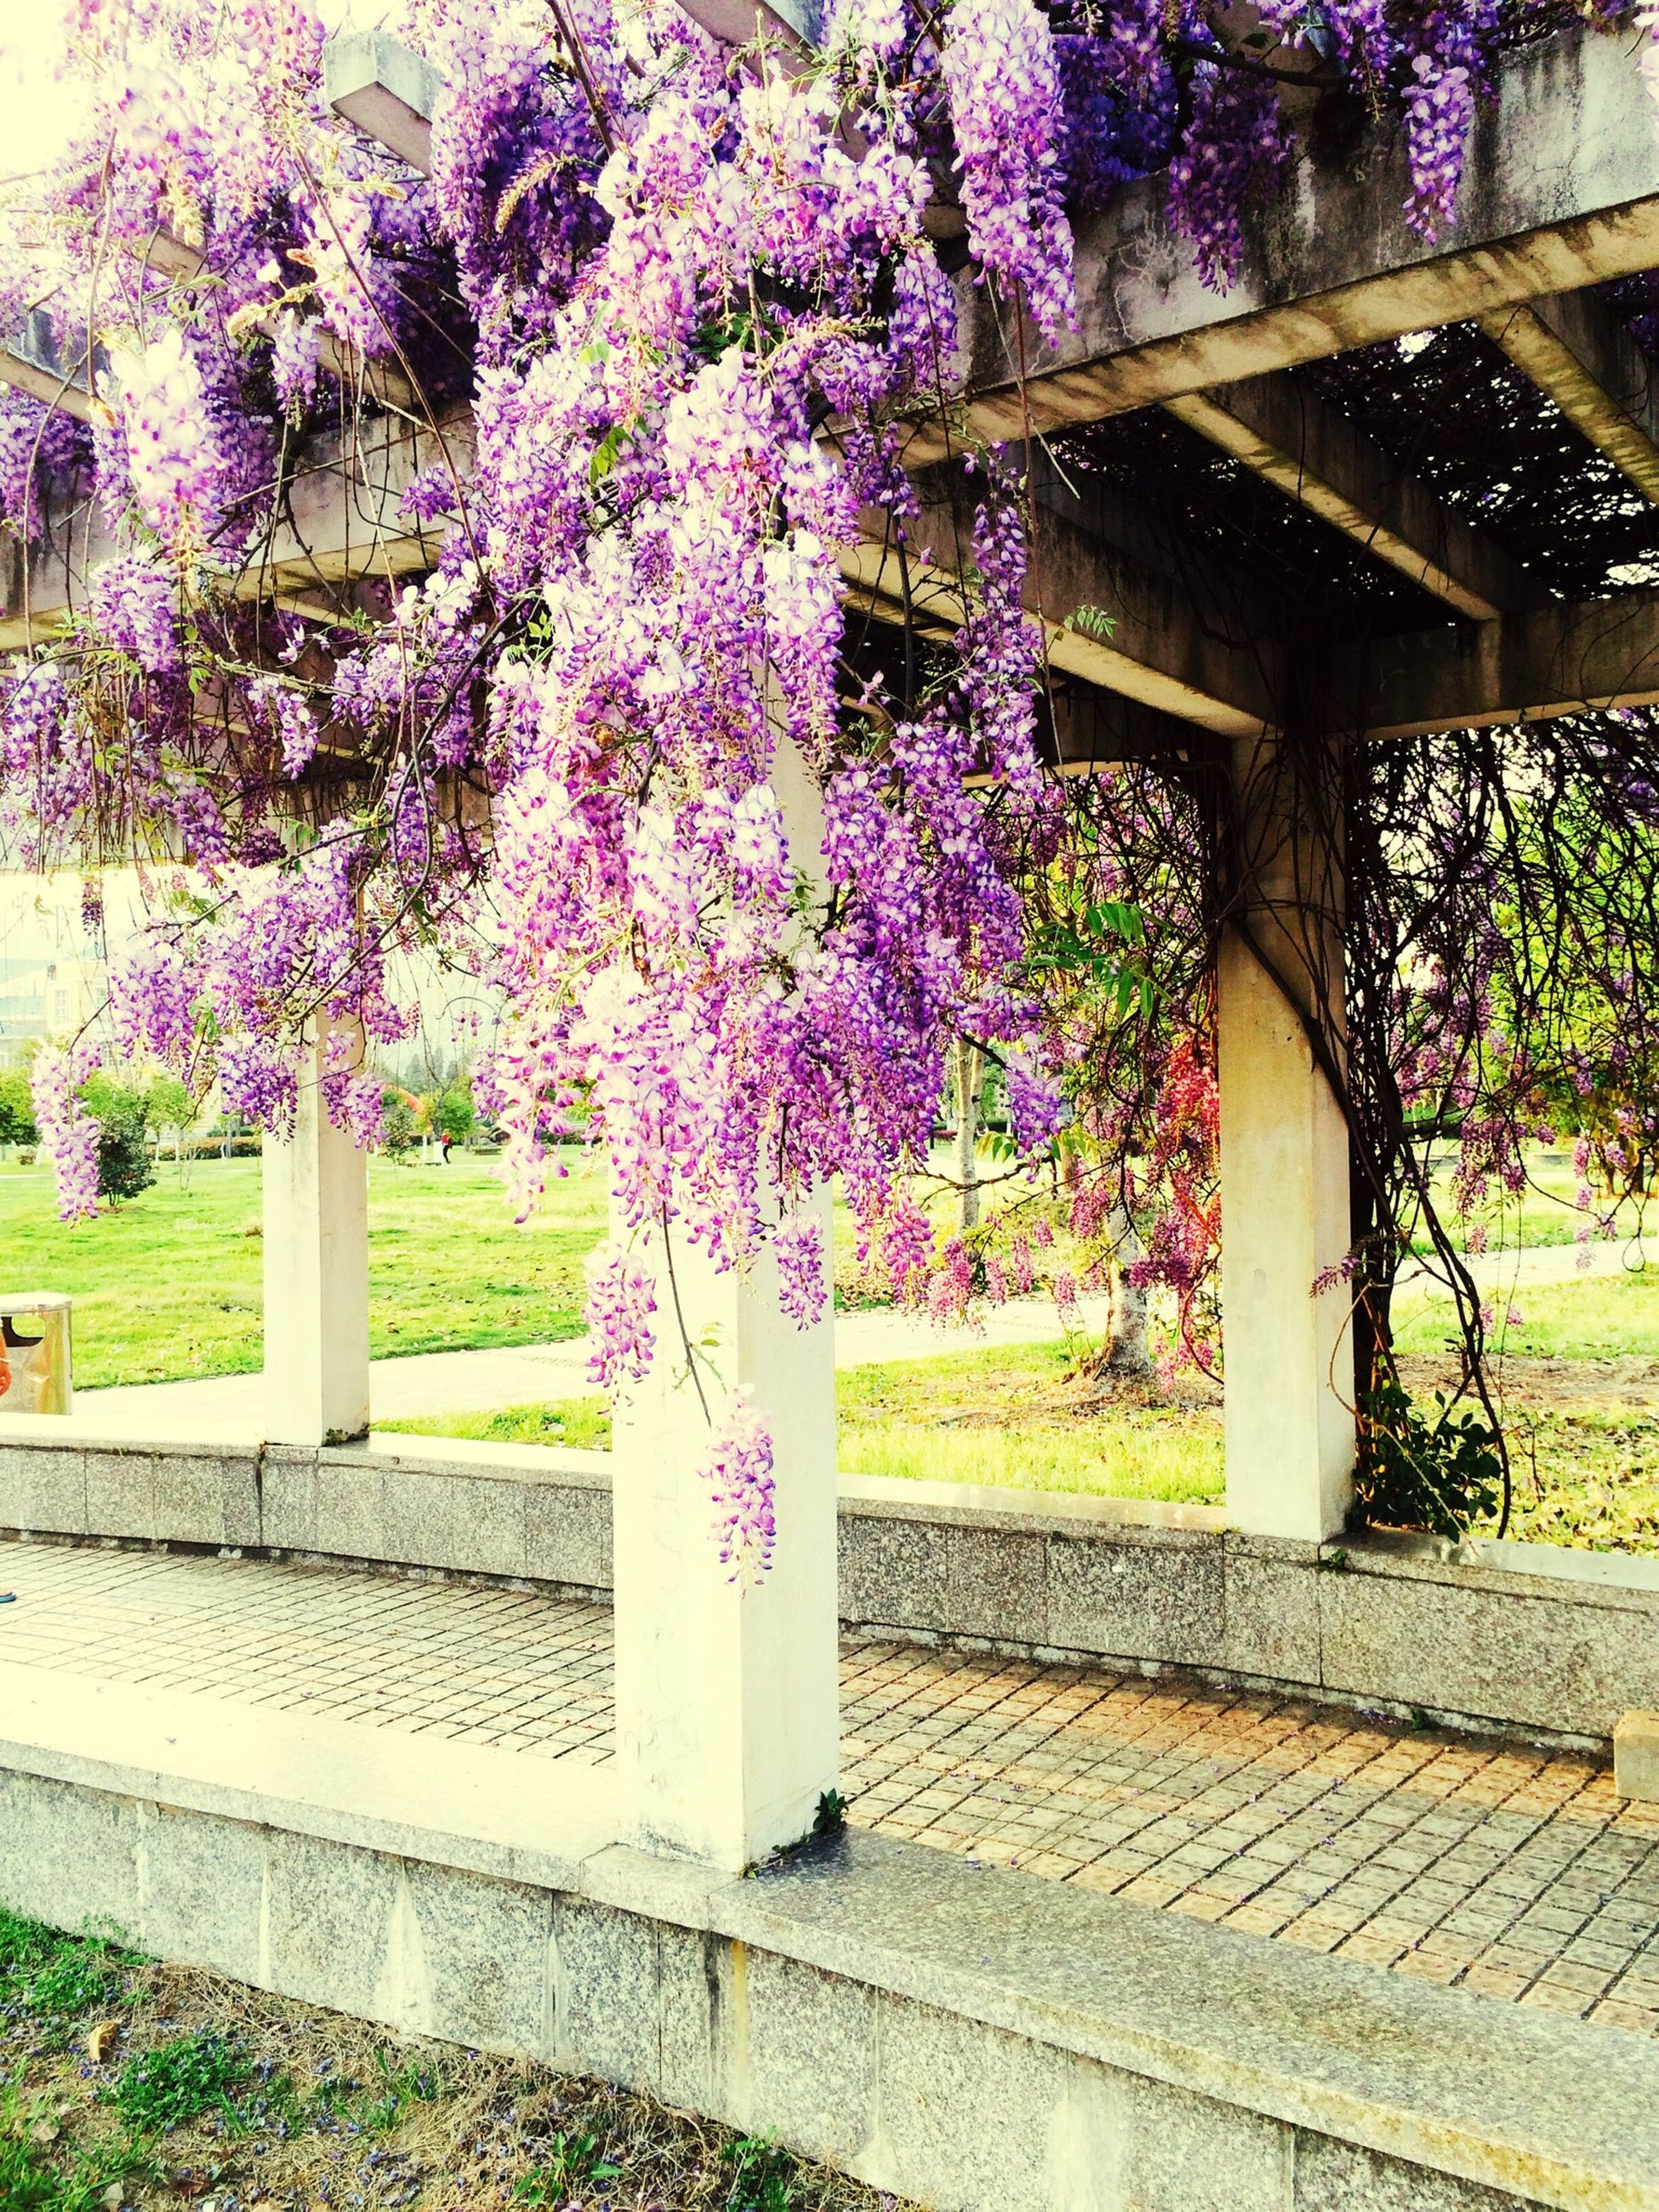 flower, growth, tree, freshness, plant, park - man made space, beauty in nature, nature, built structure, fragility, building exterior, architecture, formal garden, day, outdoors, pink color, sunlight, no people, in bloom, blooming